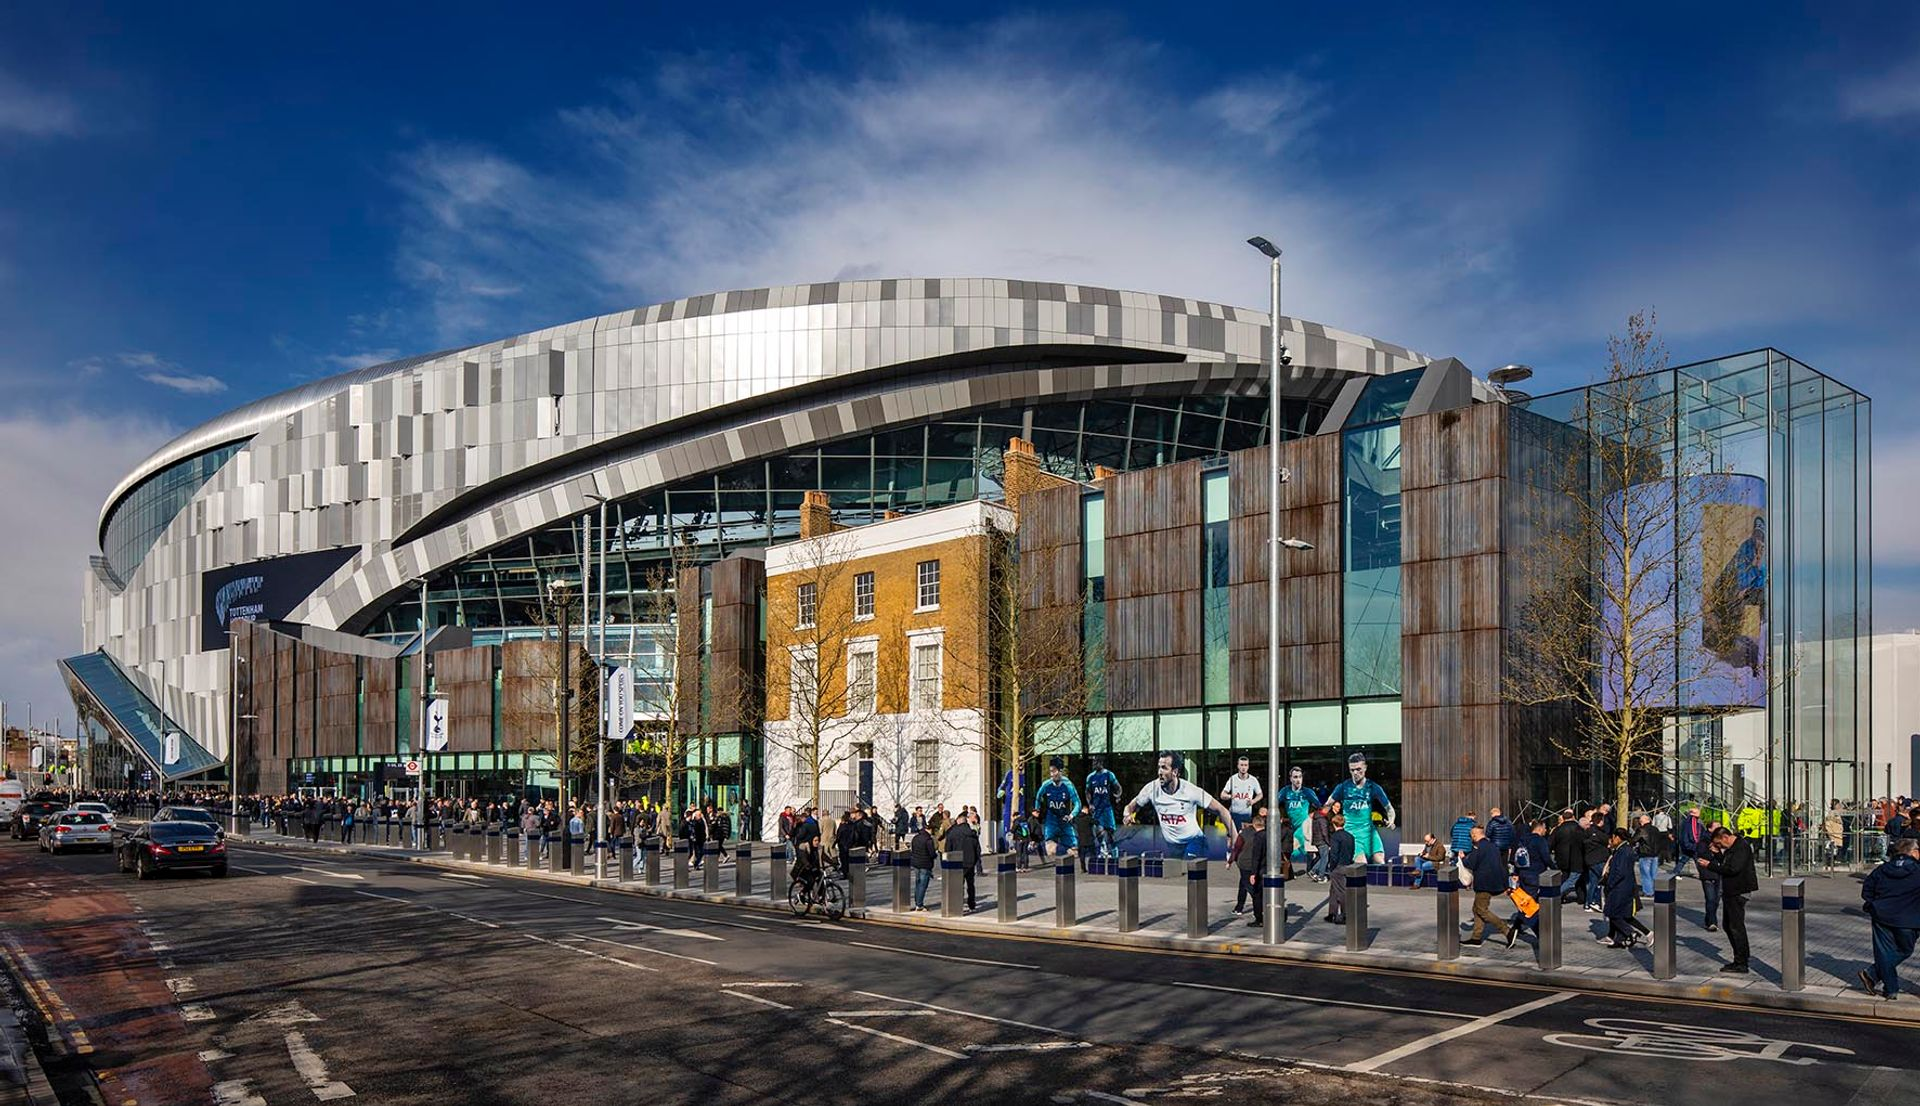 OOF gallery will be housed in a Grade II-listed building on the grounds of Tottenham Hotspur Stadium © Edward Hill photography/F3 Architects